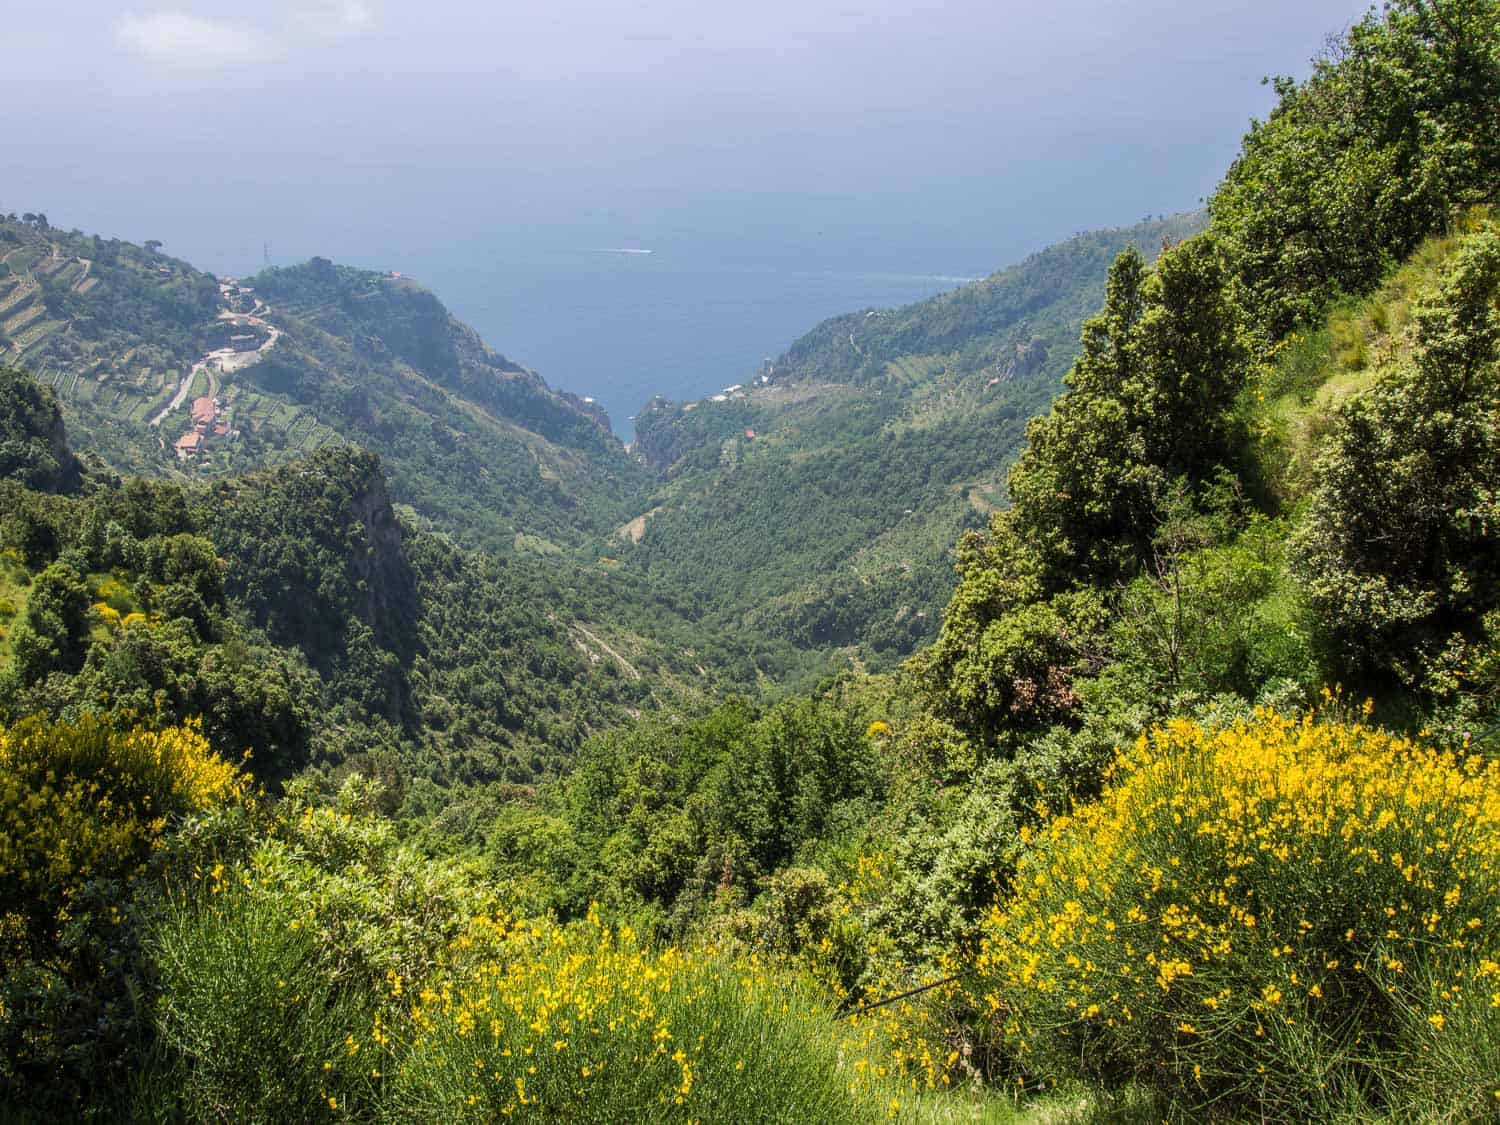 Sea views from the Path of Gods Trail in Italy